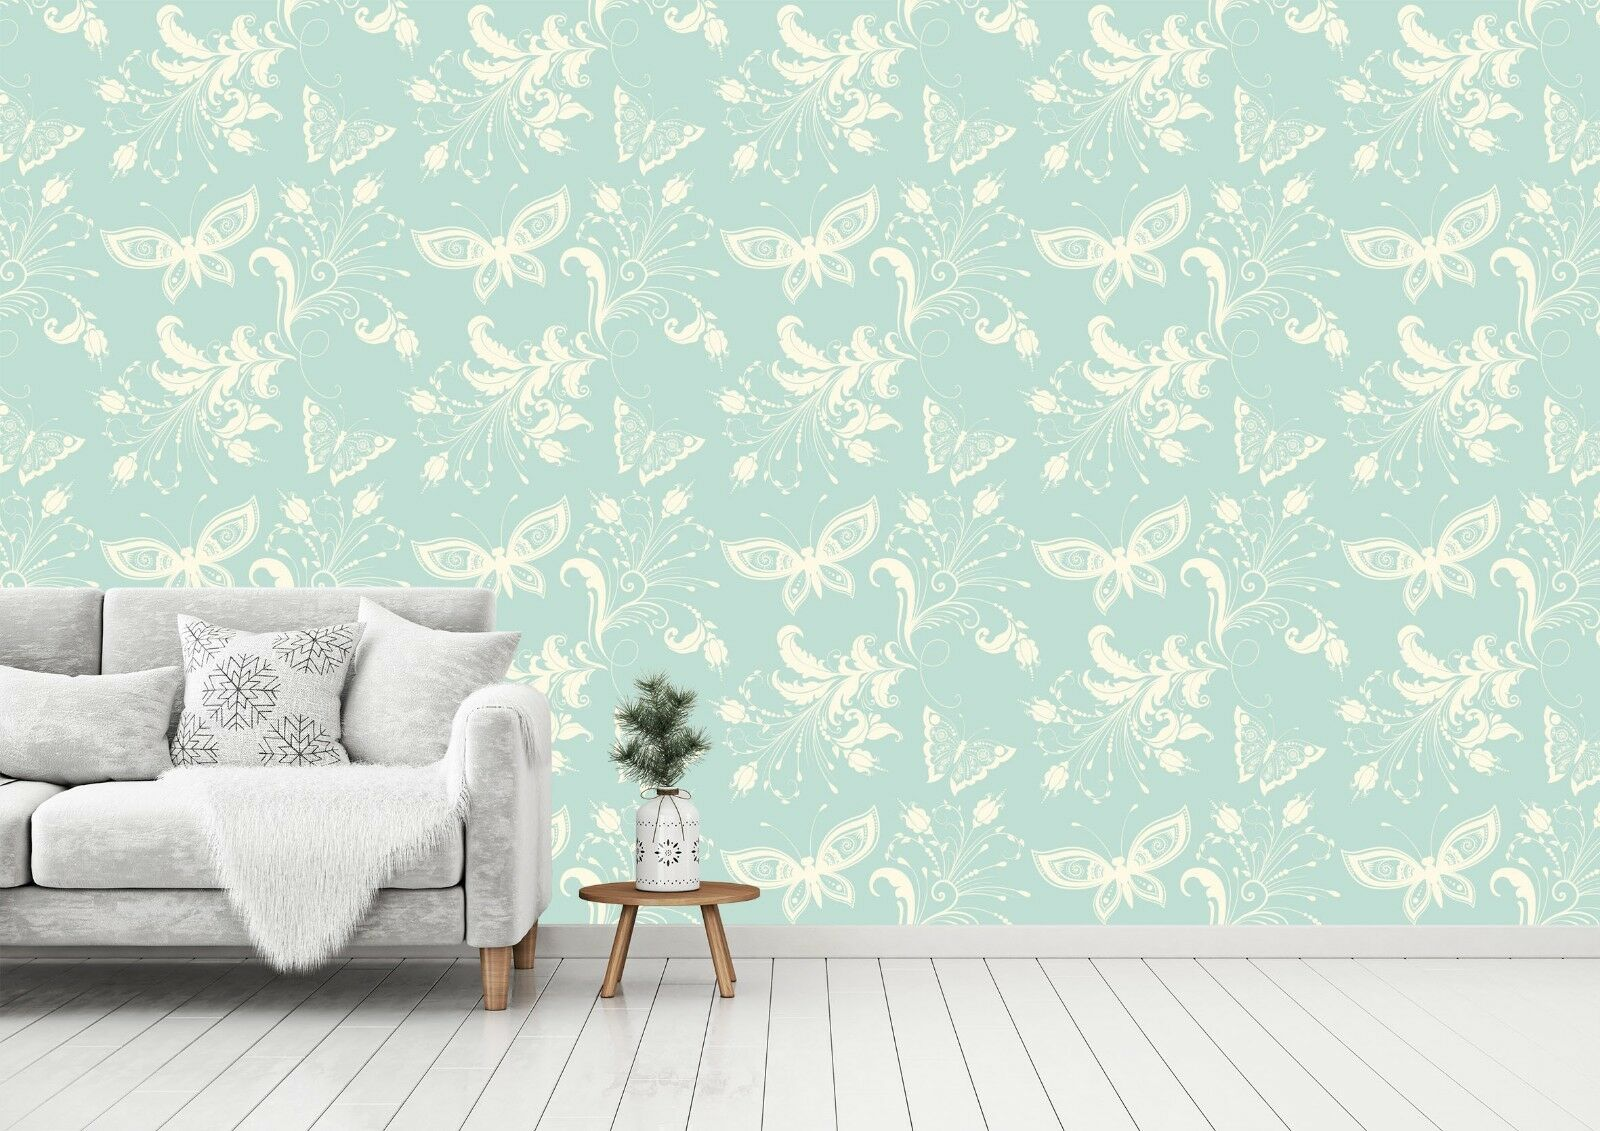 3D Butterfly Floral Blau 5 Wall Paper Wall Print Decal Deco Indoor Wall Mural CA